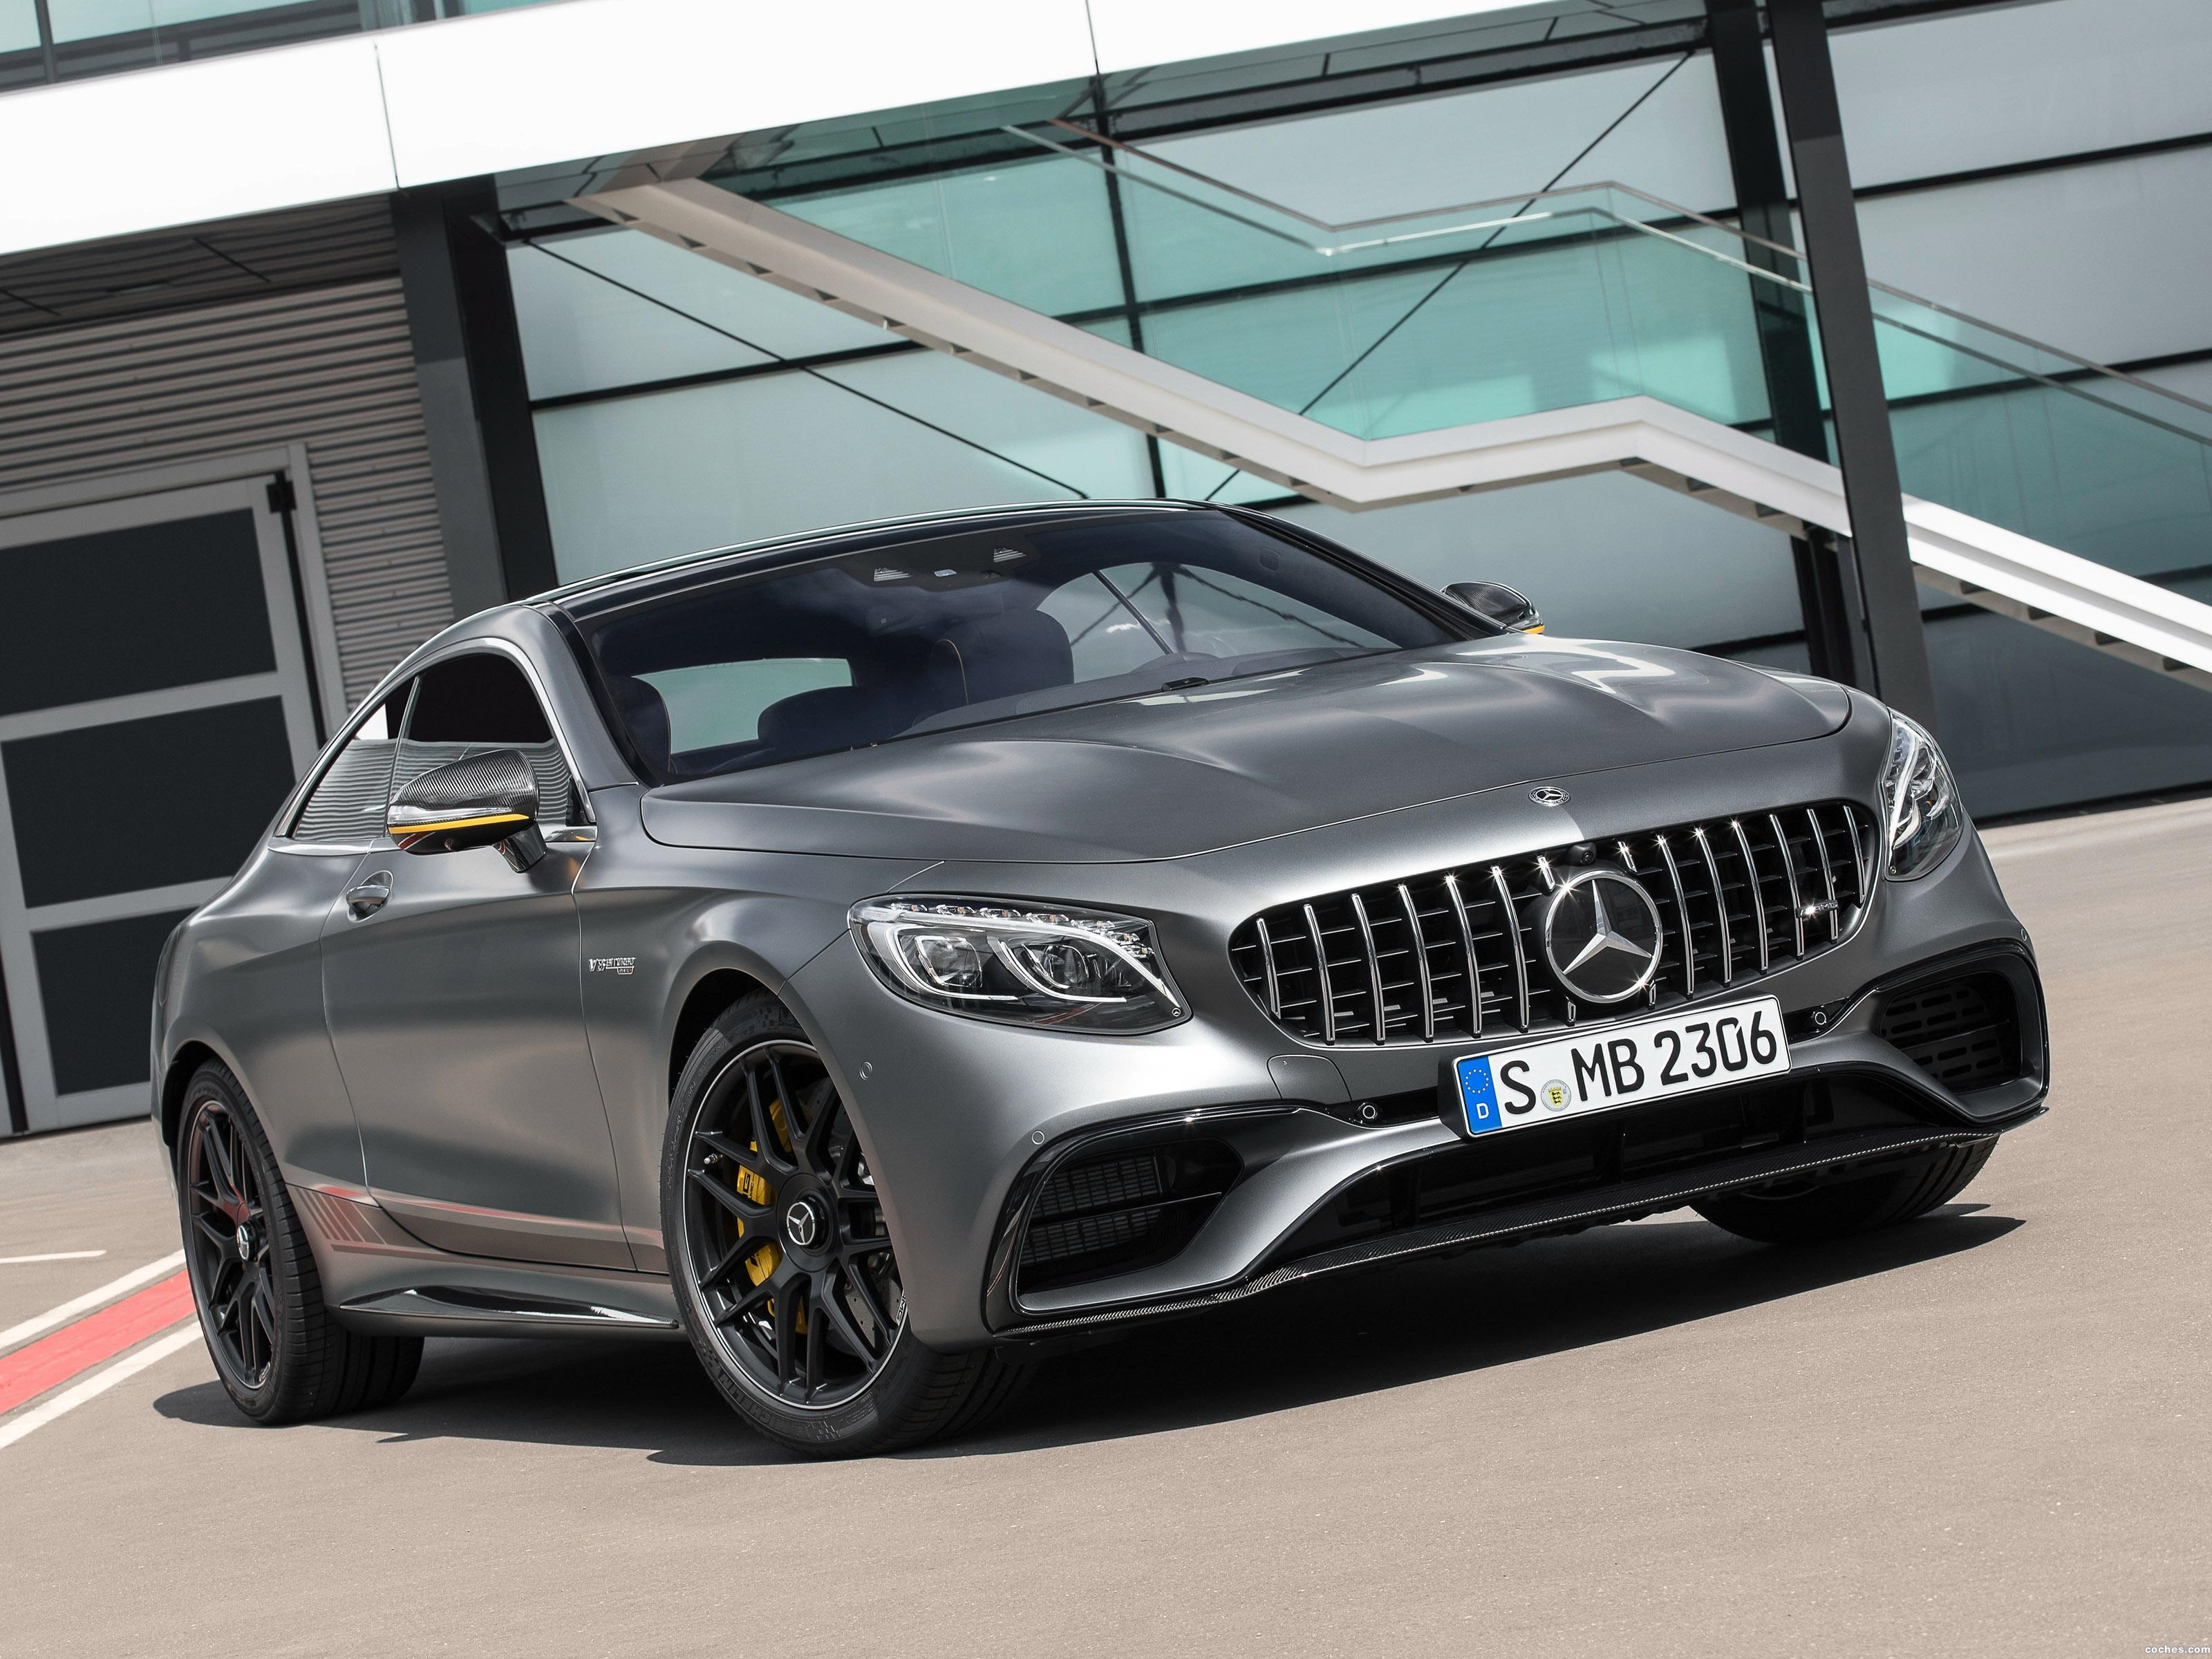 Foto 0 de Mercedes AMG S 63 4MATIC Coupe Yellow Night Edition C217 2017